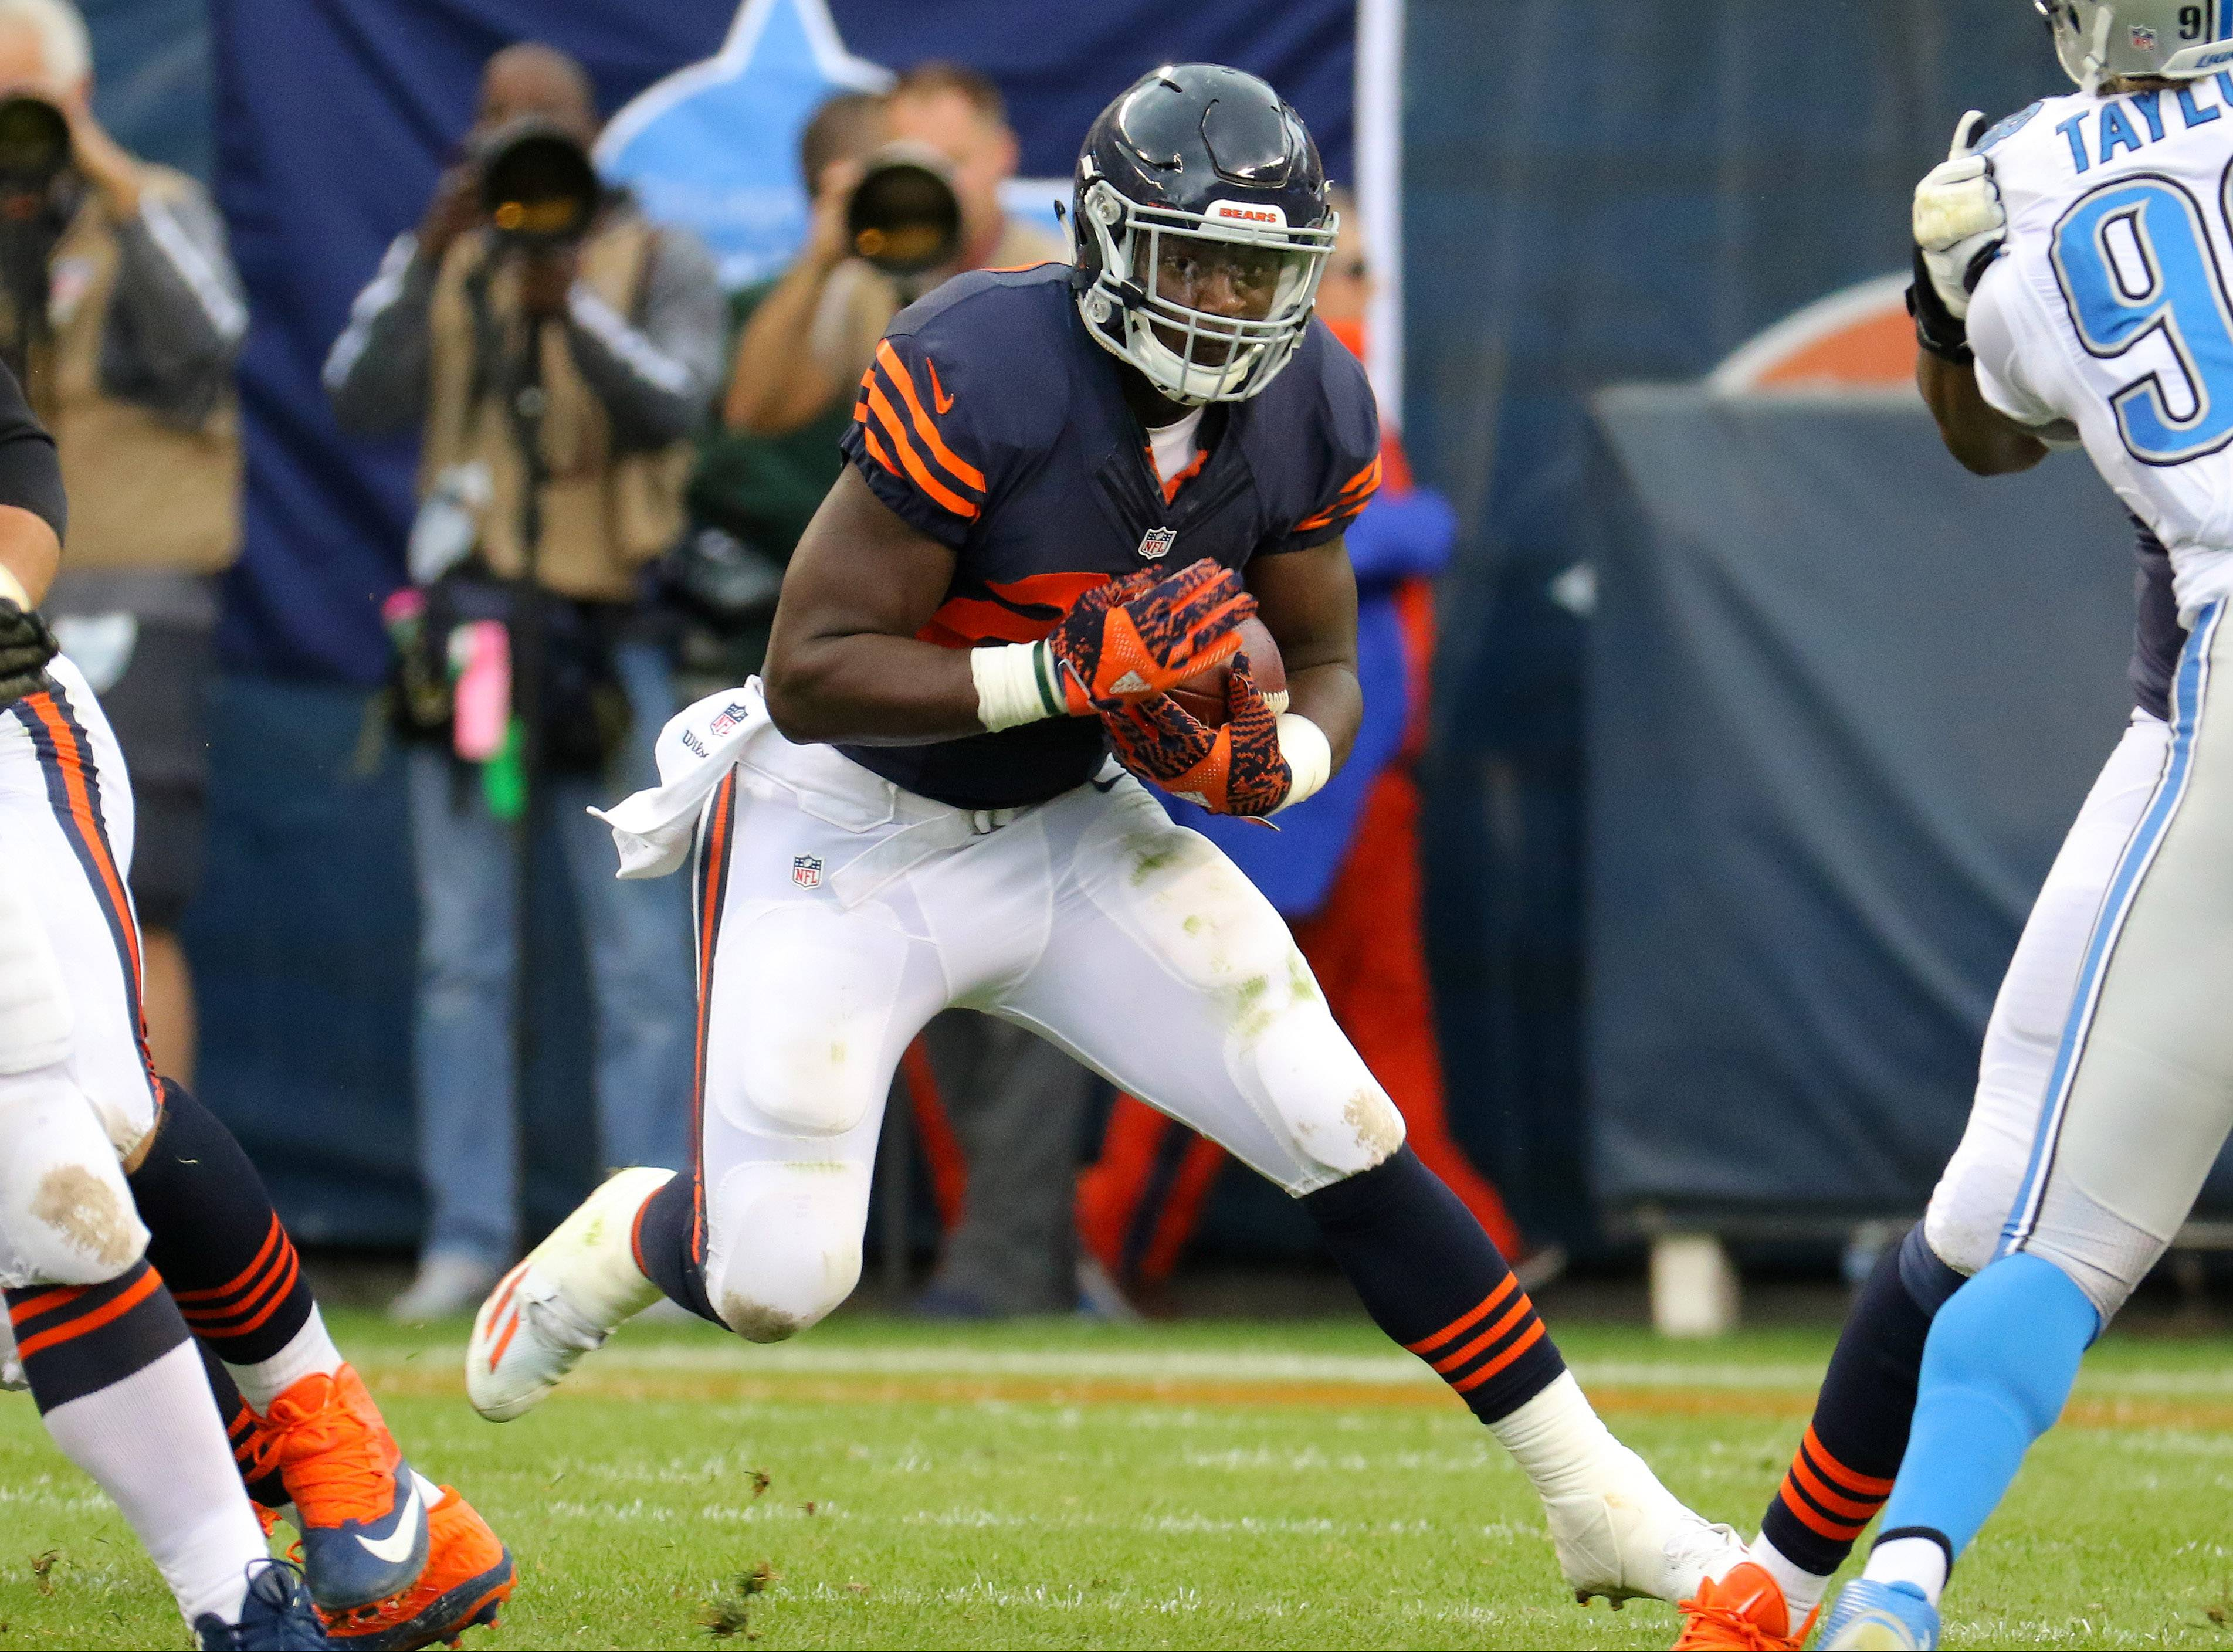 Chicago Bears running back Jordan Howard, who was honored with a Piccolo Award this week, says his goal is to become the best running back in the NFL.